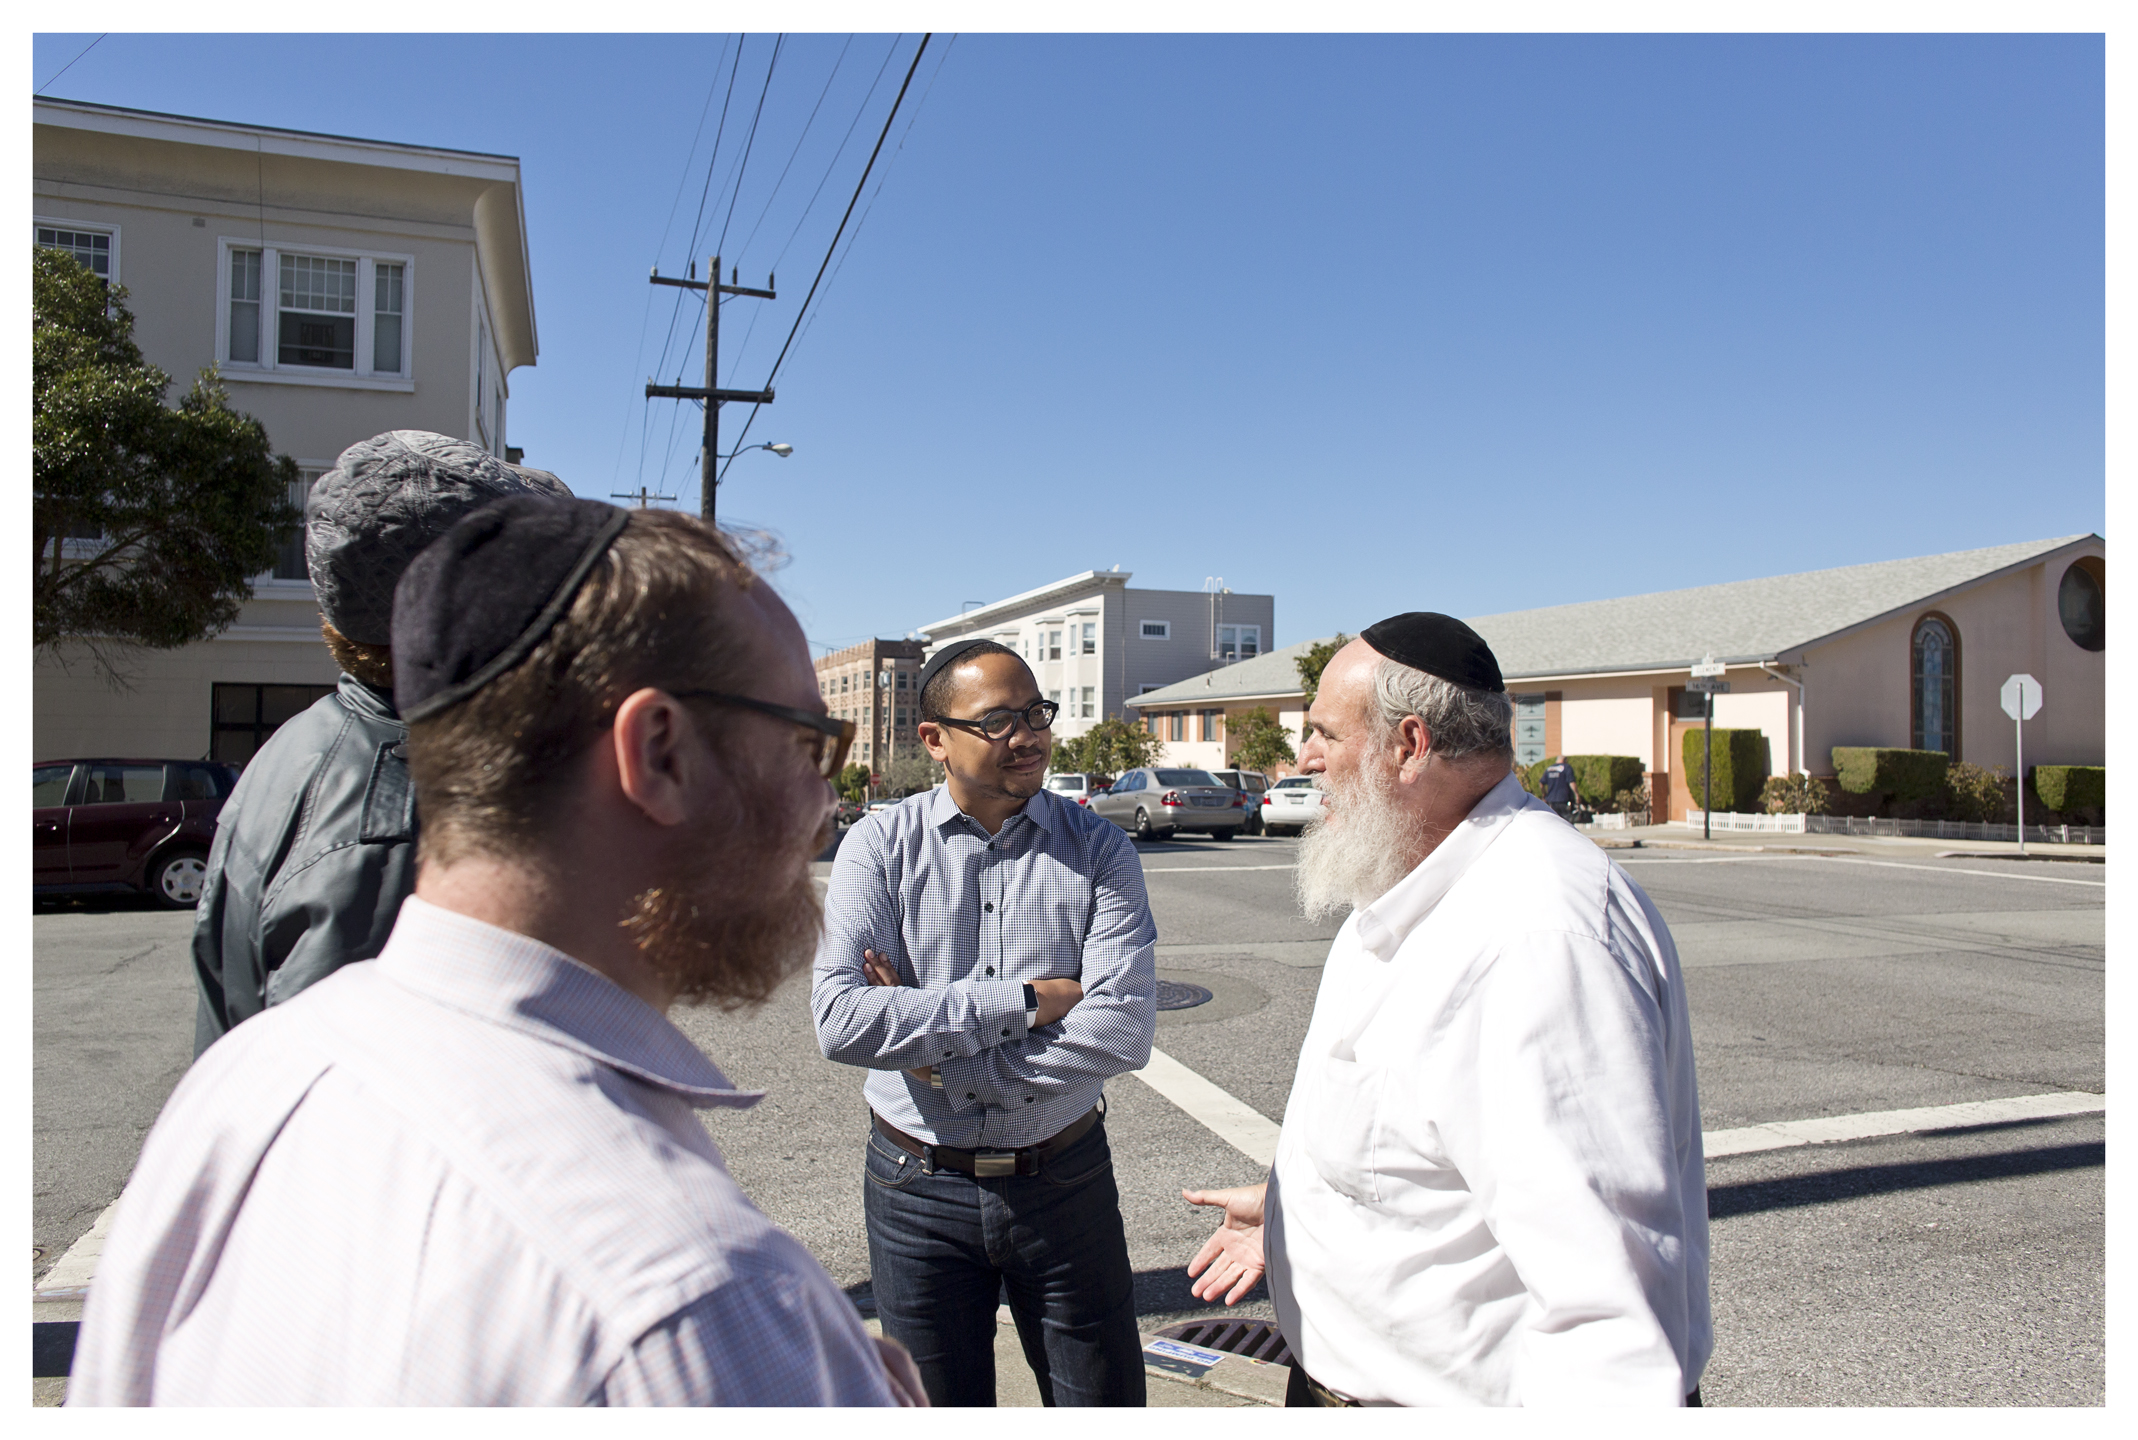 RabbiZarchiAngelRabbi__RichmondDistrict_SFCA_October2015